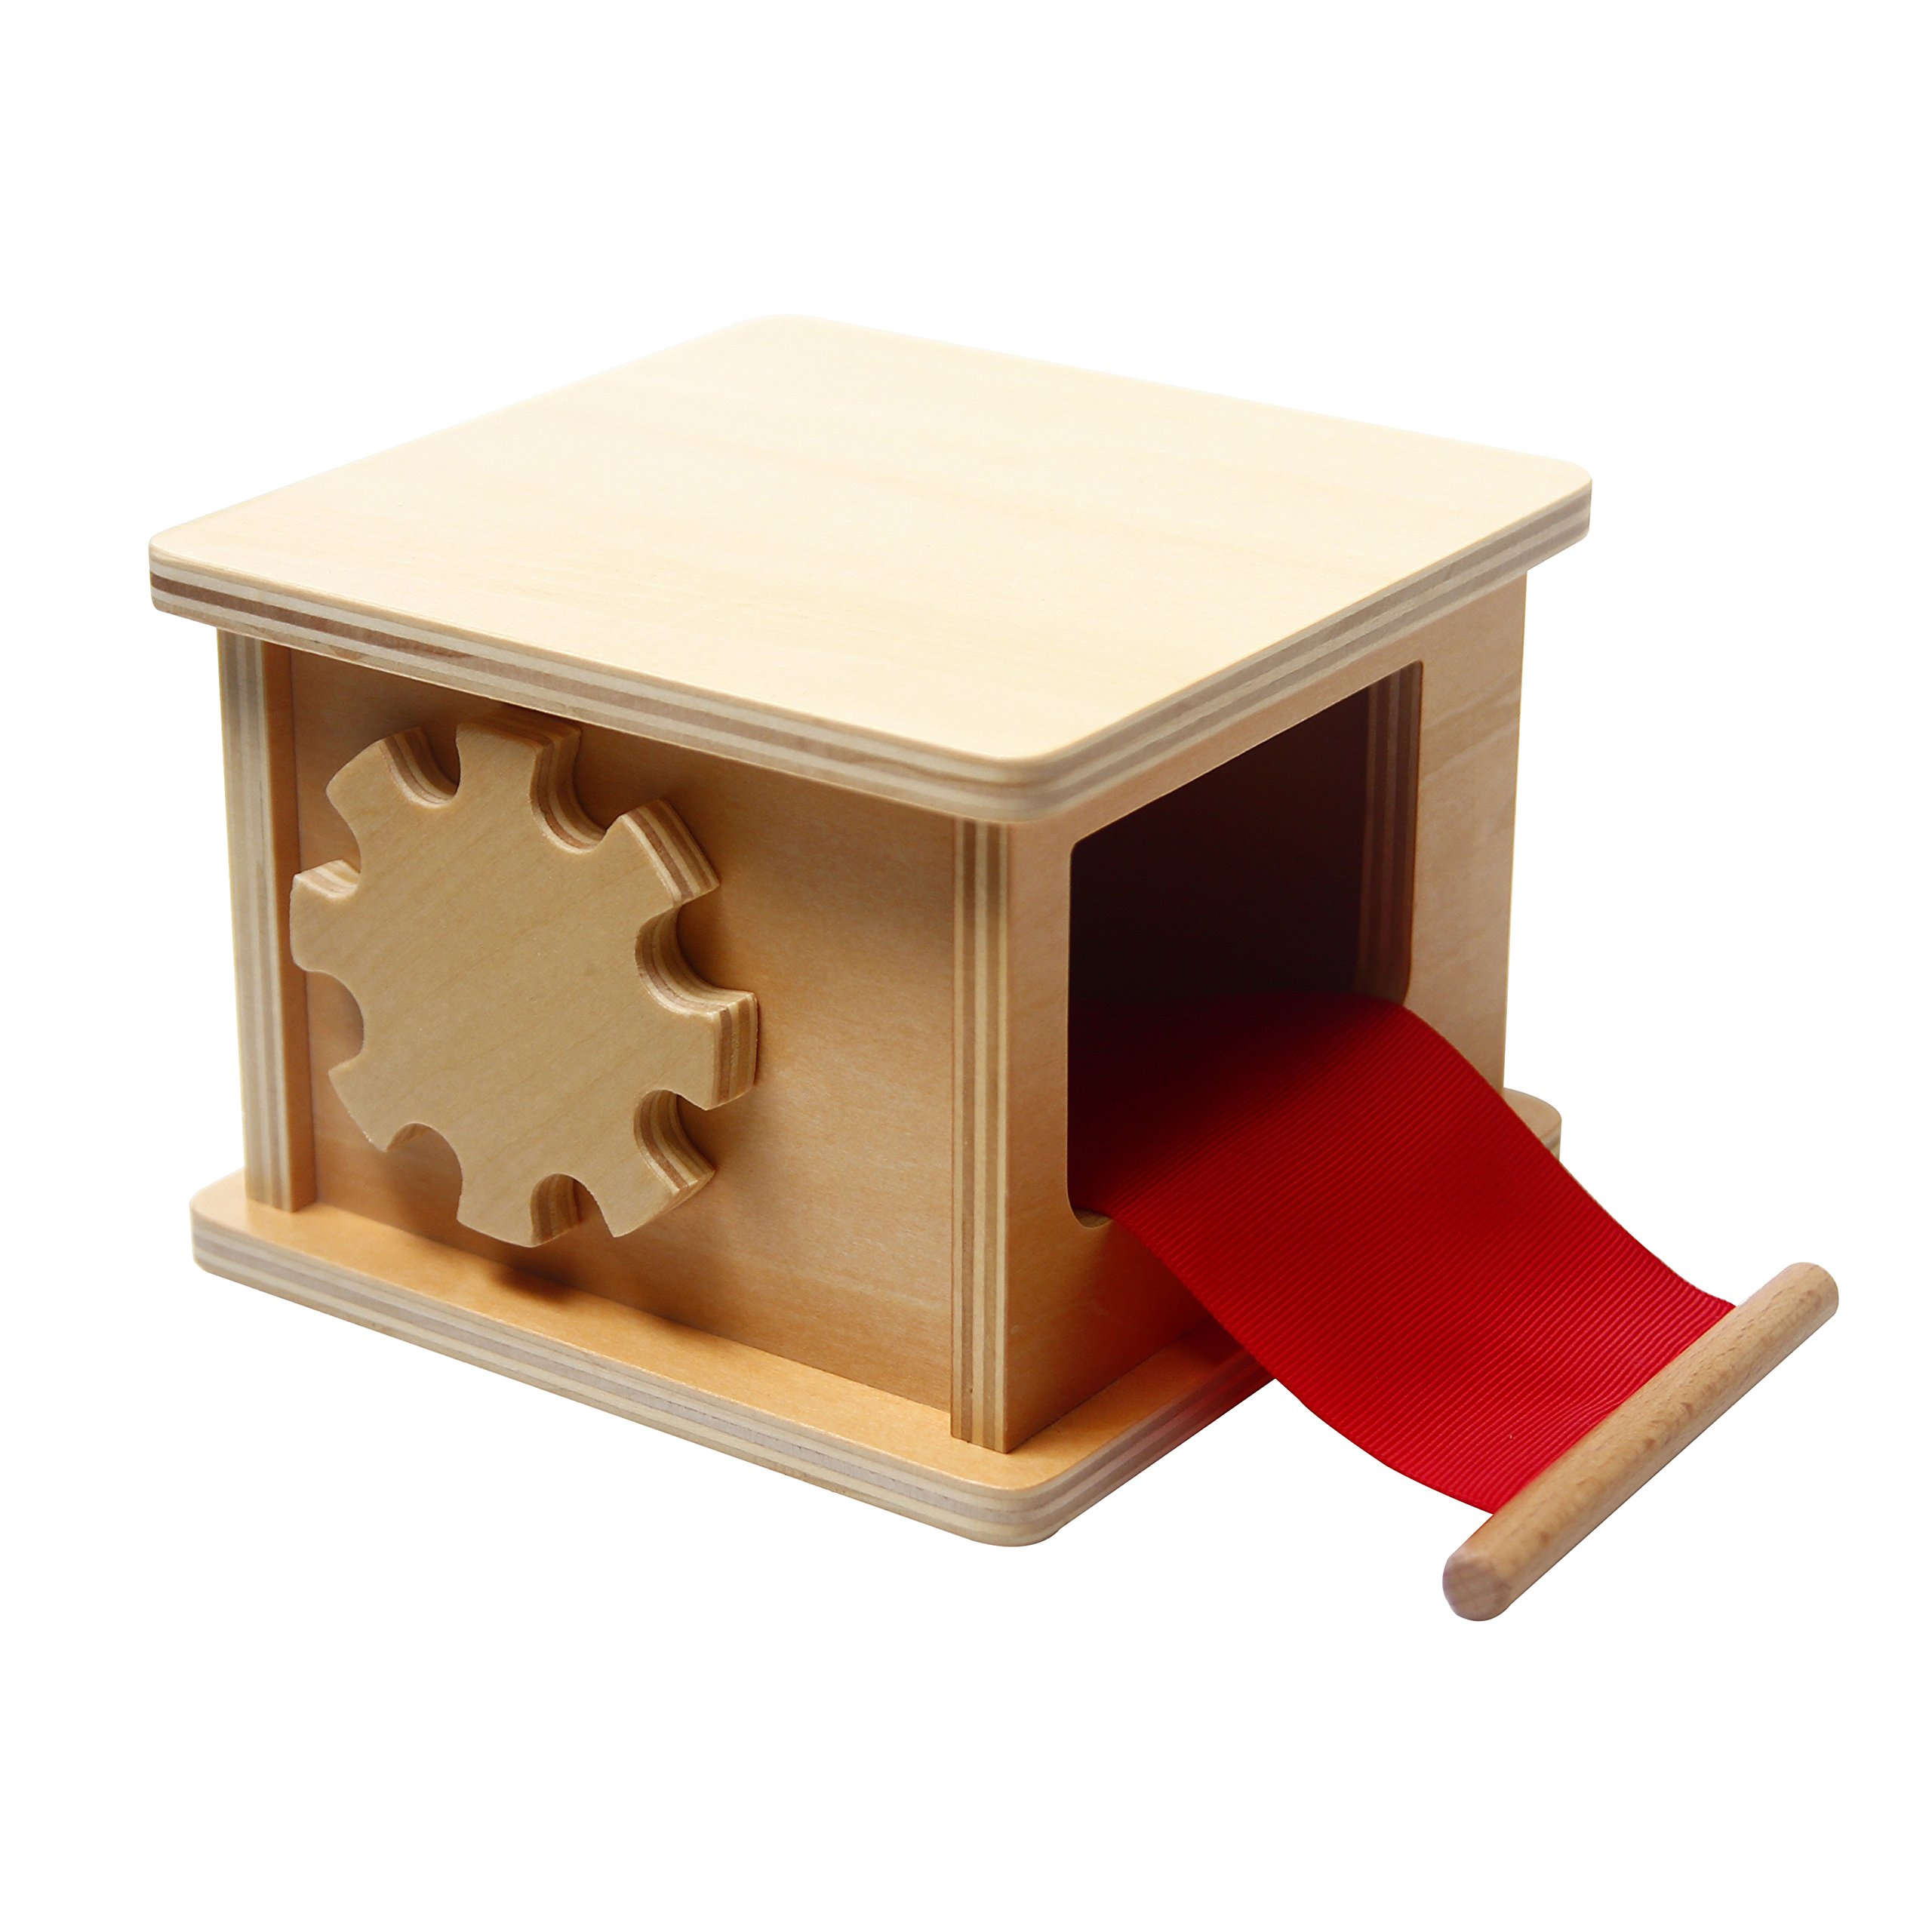 LEADER JOY Montessori Materials Wooden Winder for Preschool Early Learning Tool